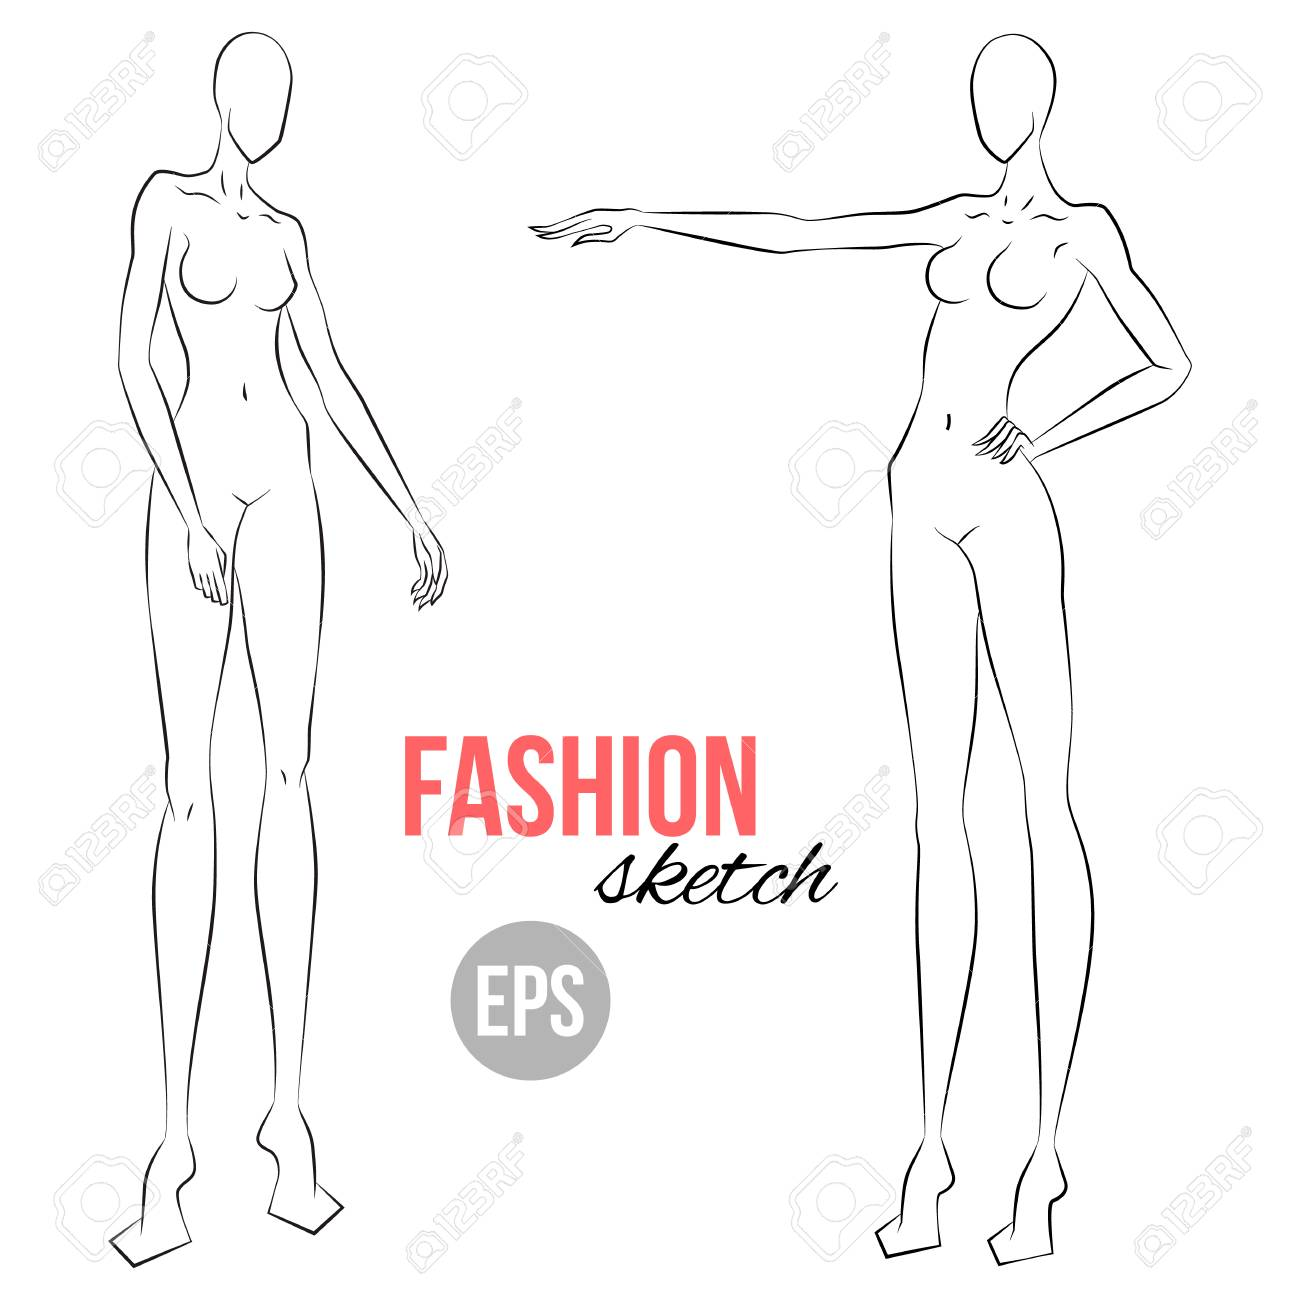 Woman S Figure Sketch Different Poses Template For Drawing Royalty Free Cliparts Vectors And Stock Illustration Image 97069520